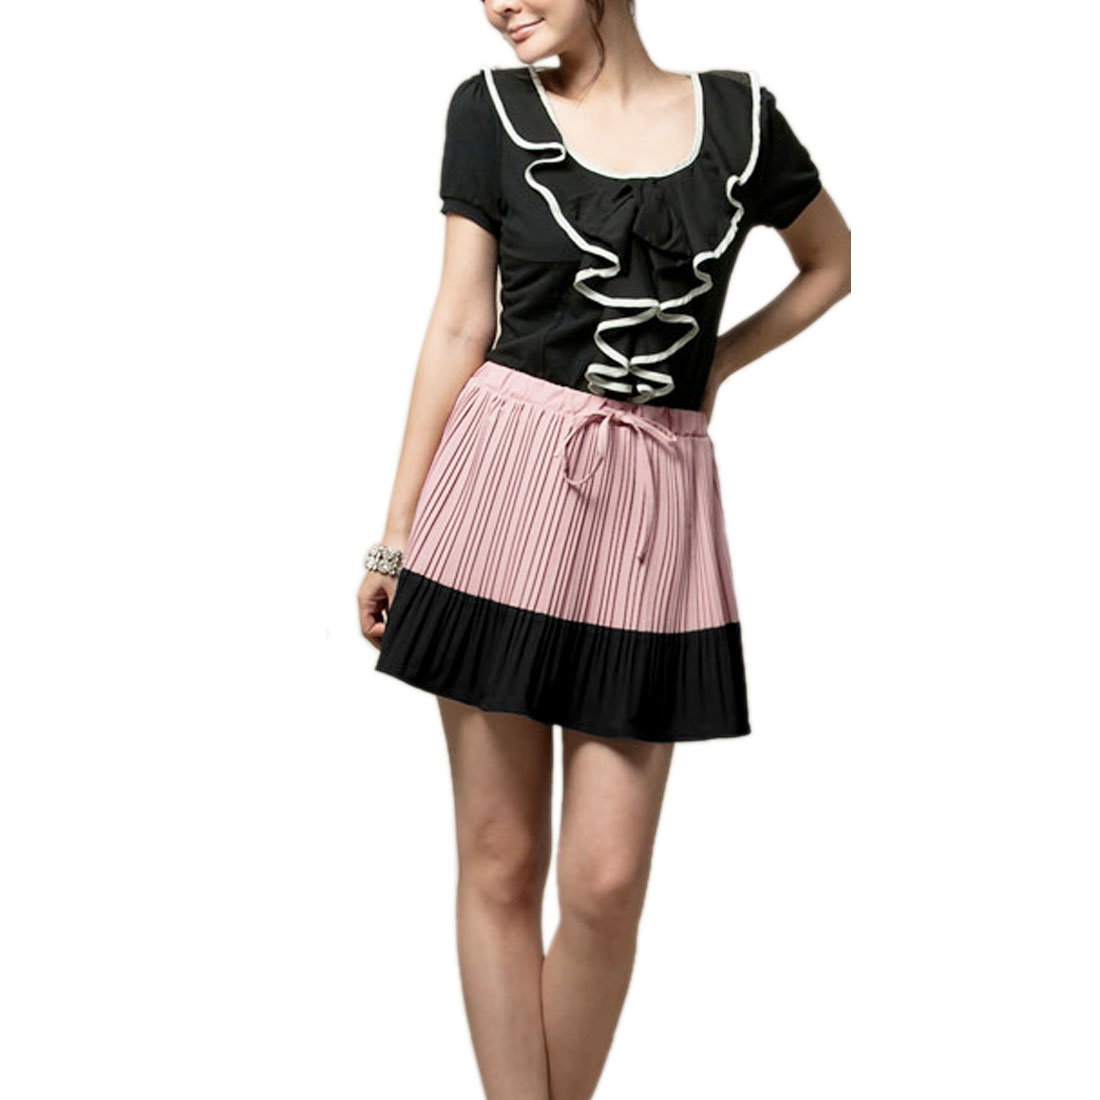 Light Pink Color Contrast Drawstring Elastic Waist Chiffon Skirt for Ladies S